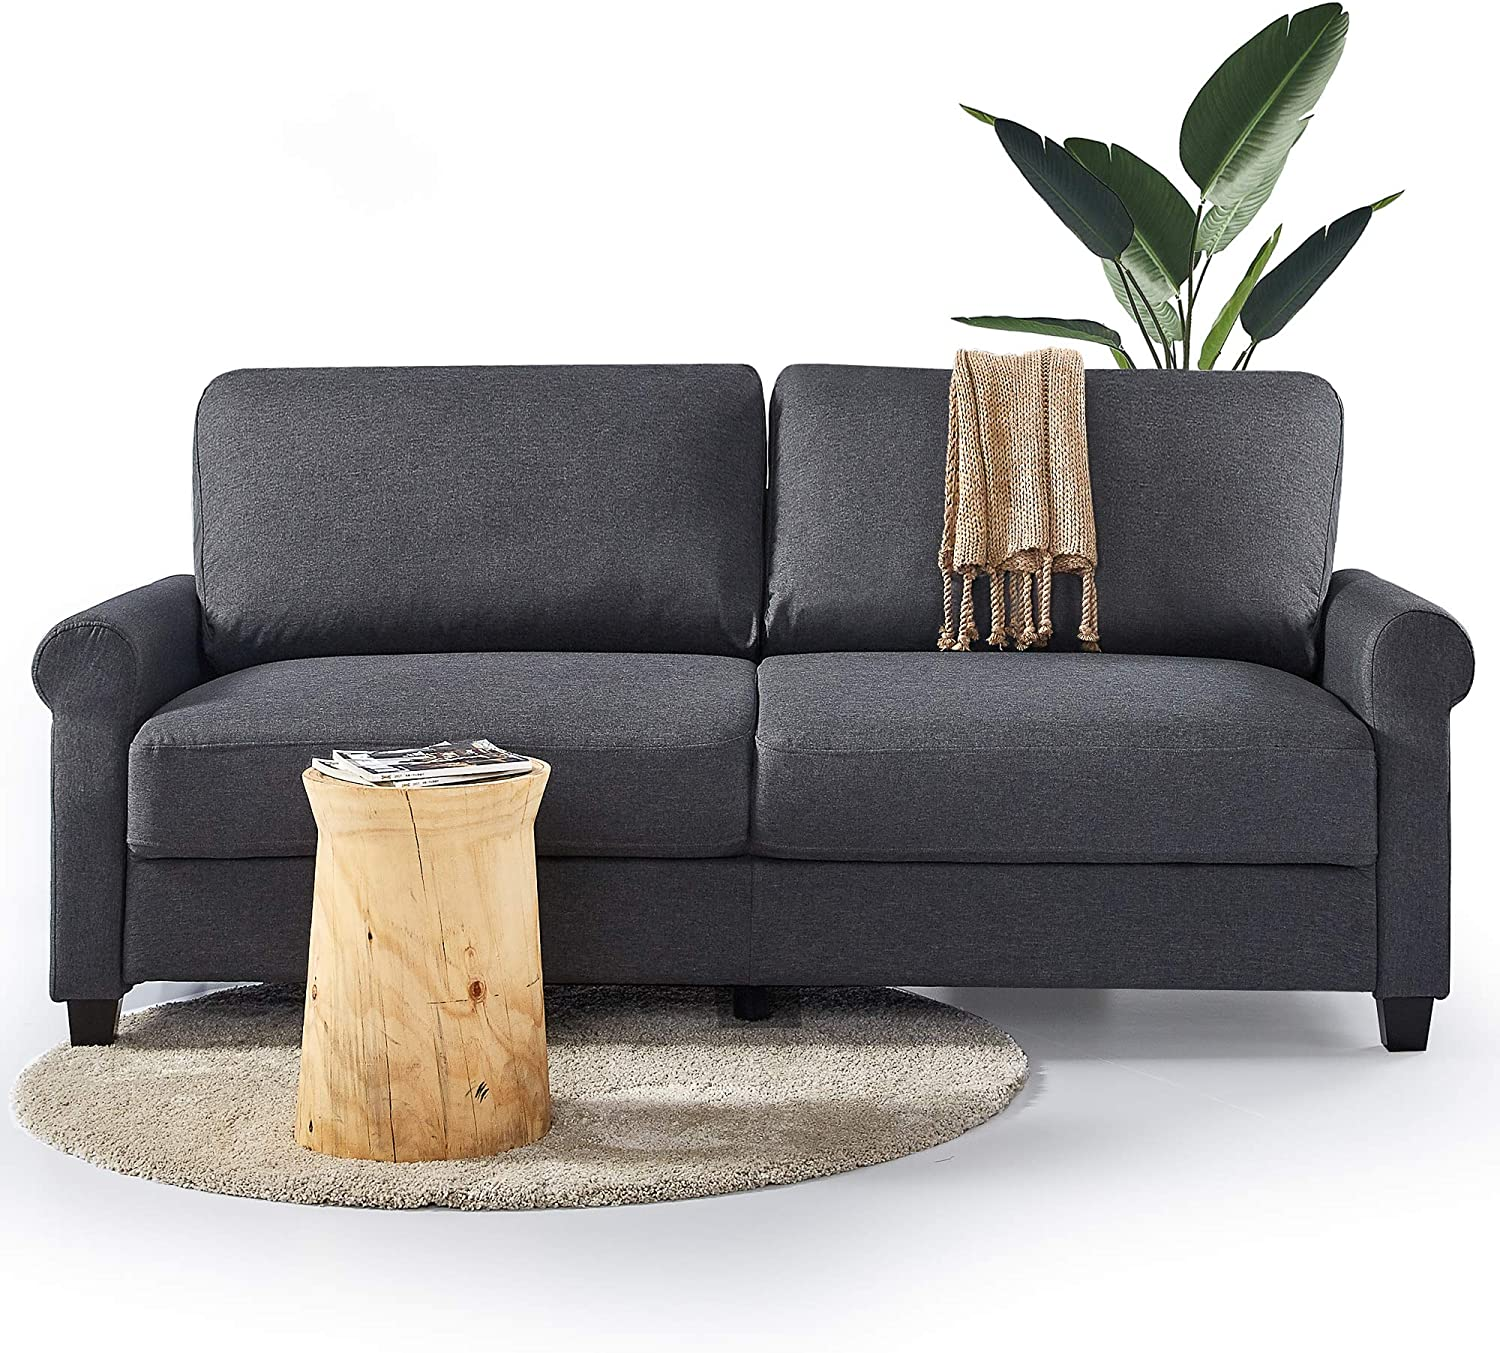 Cheap Sofa Beds 5 Tips to Buy a Quality Sofa